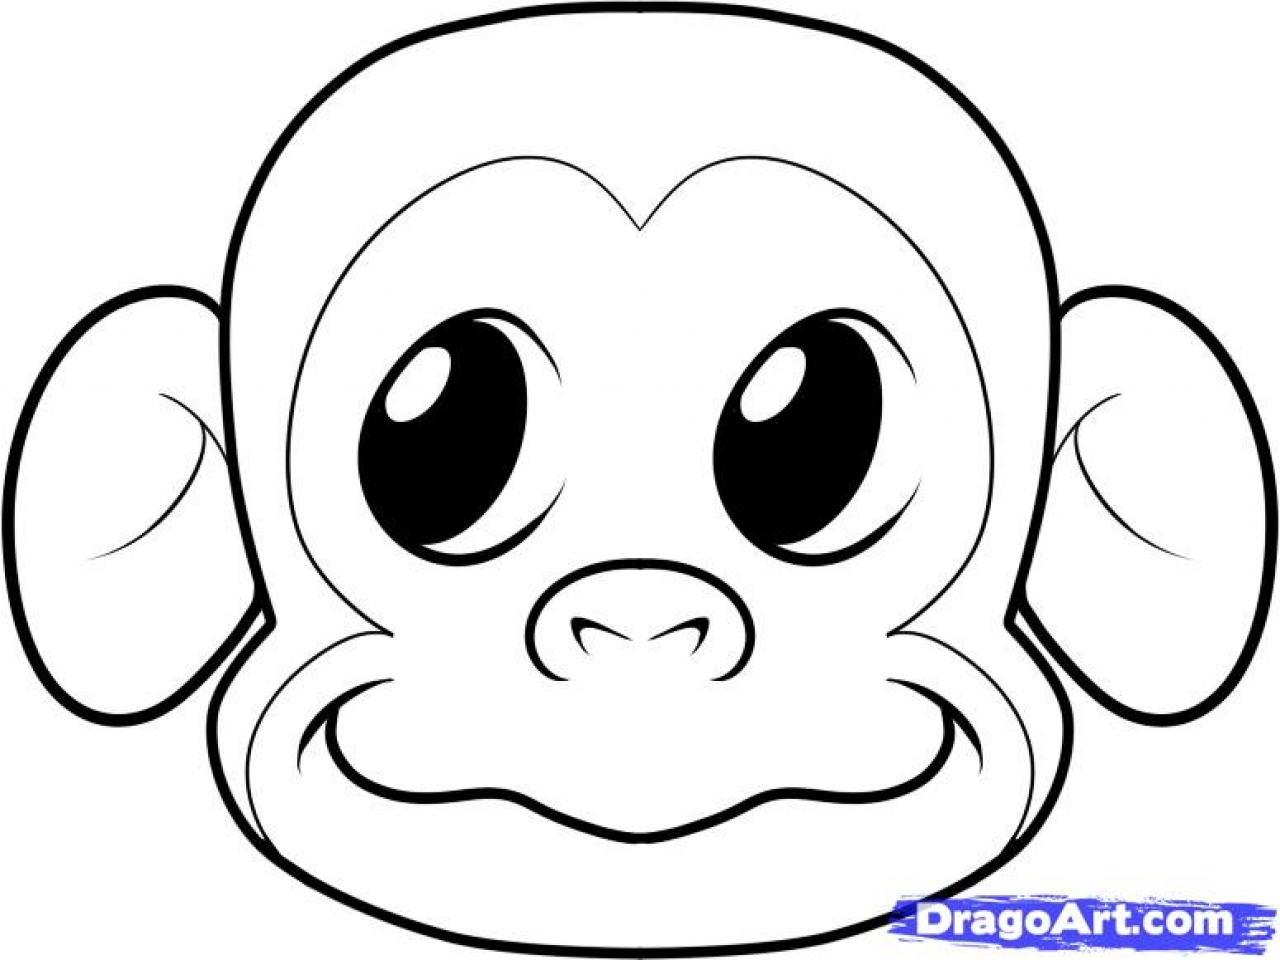 1280x960 Gorilla Face Coloring How To Draw A Monkey Step By